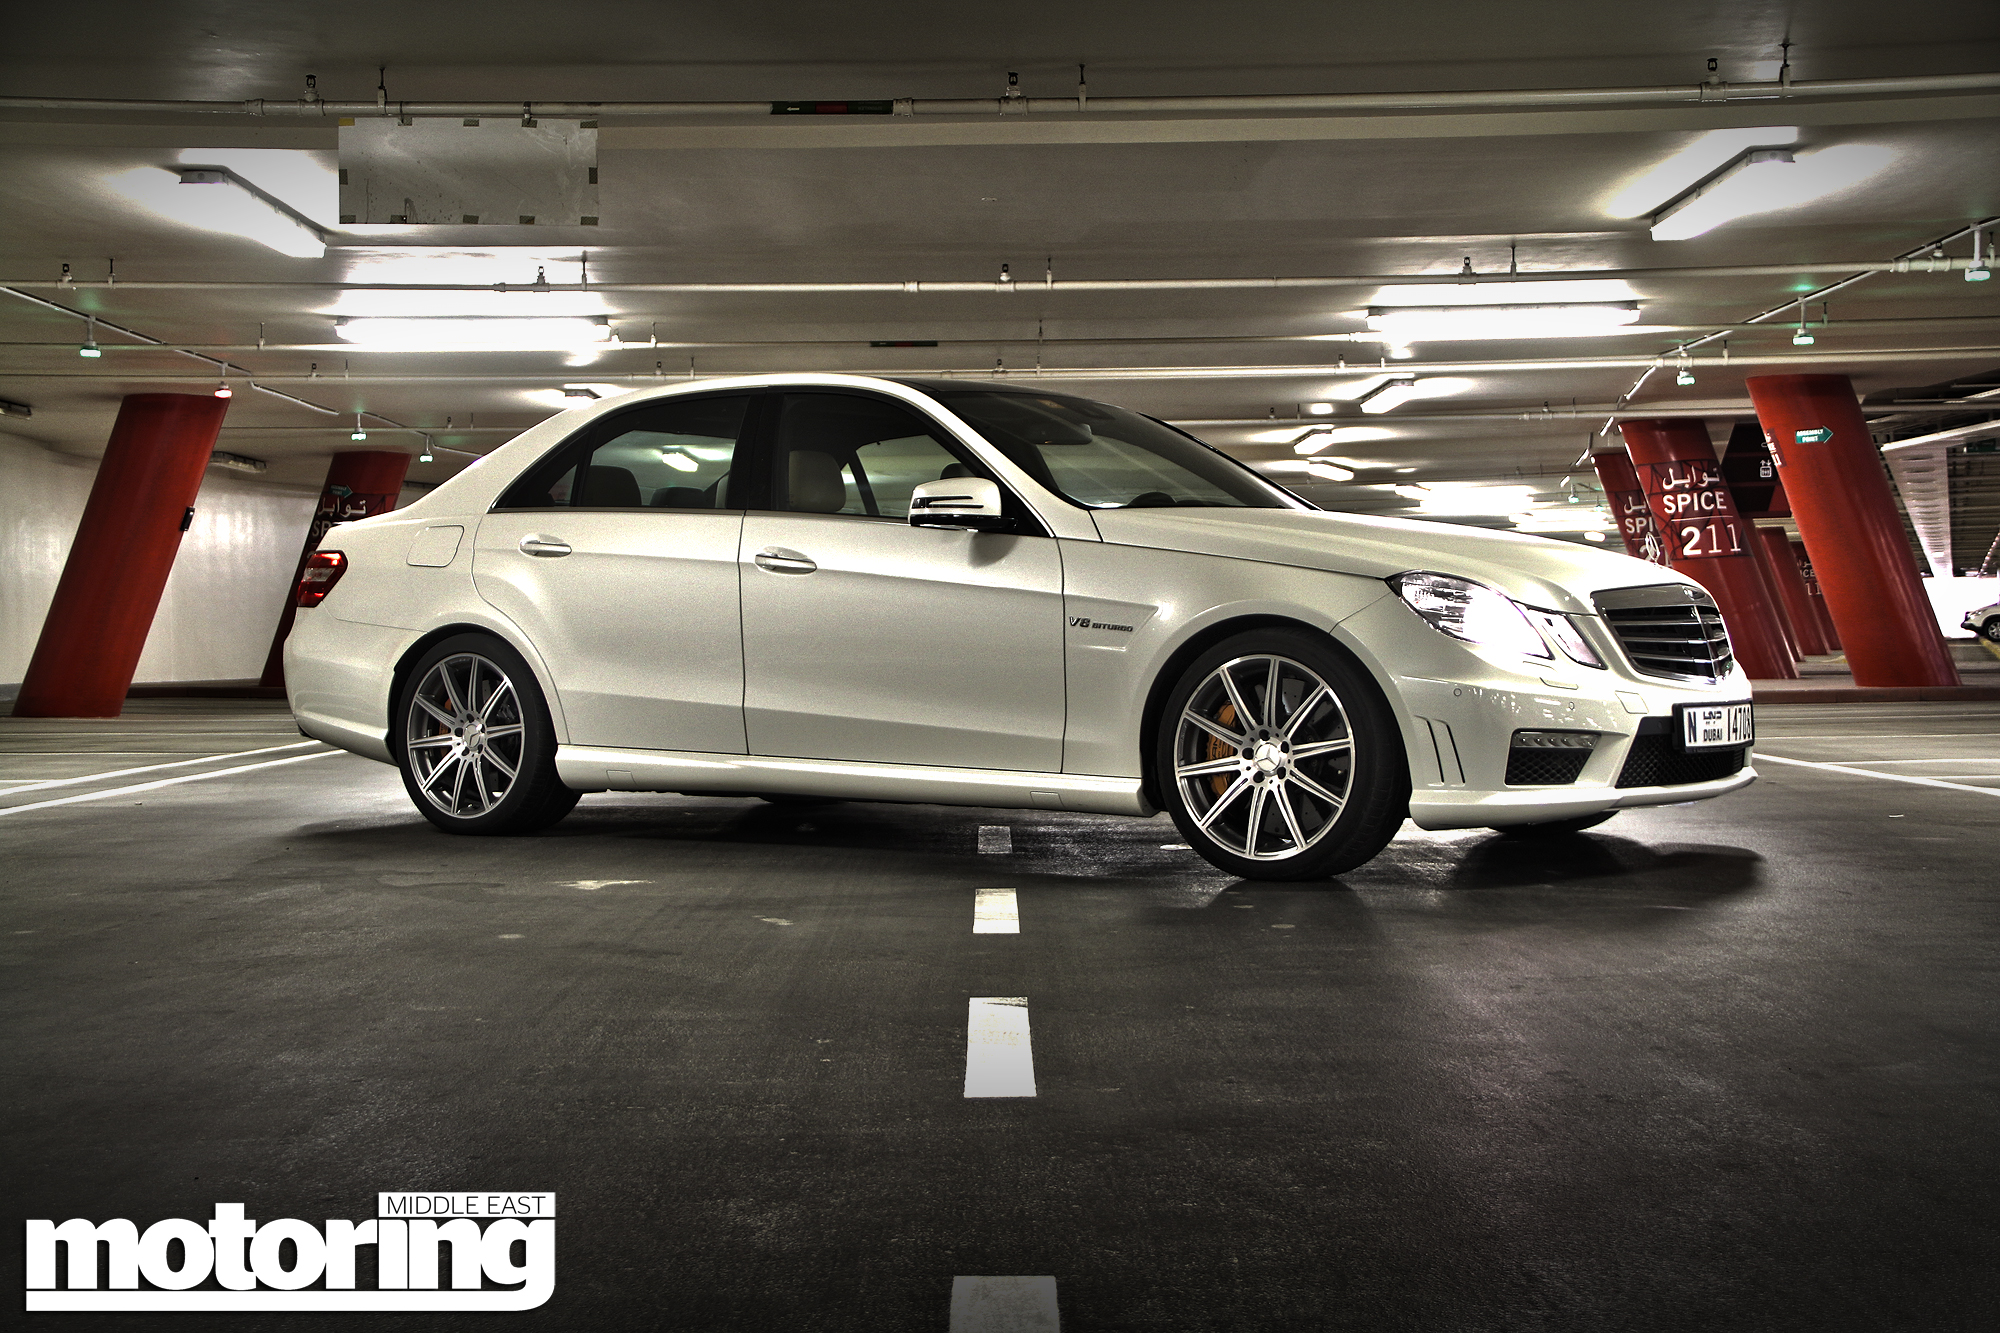 2012 Mercedes E63 Amg Review Motoring Middle East Car News Reviews And Buying Guidesmotoring Middle East Car News Reviews And Buying Guides